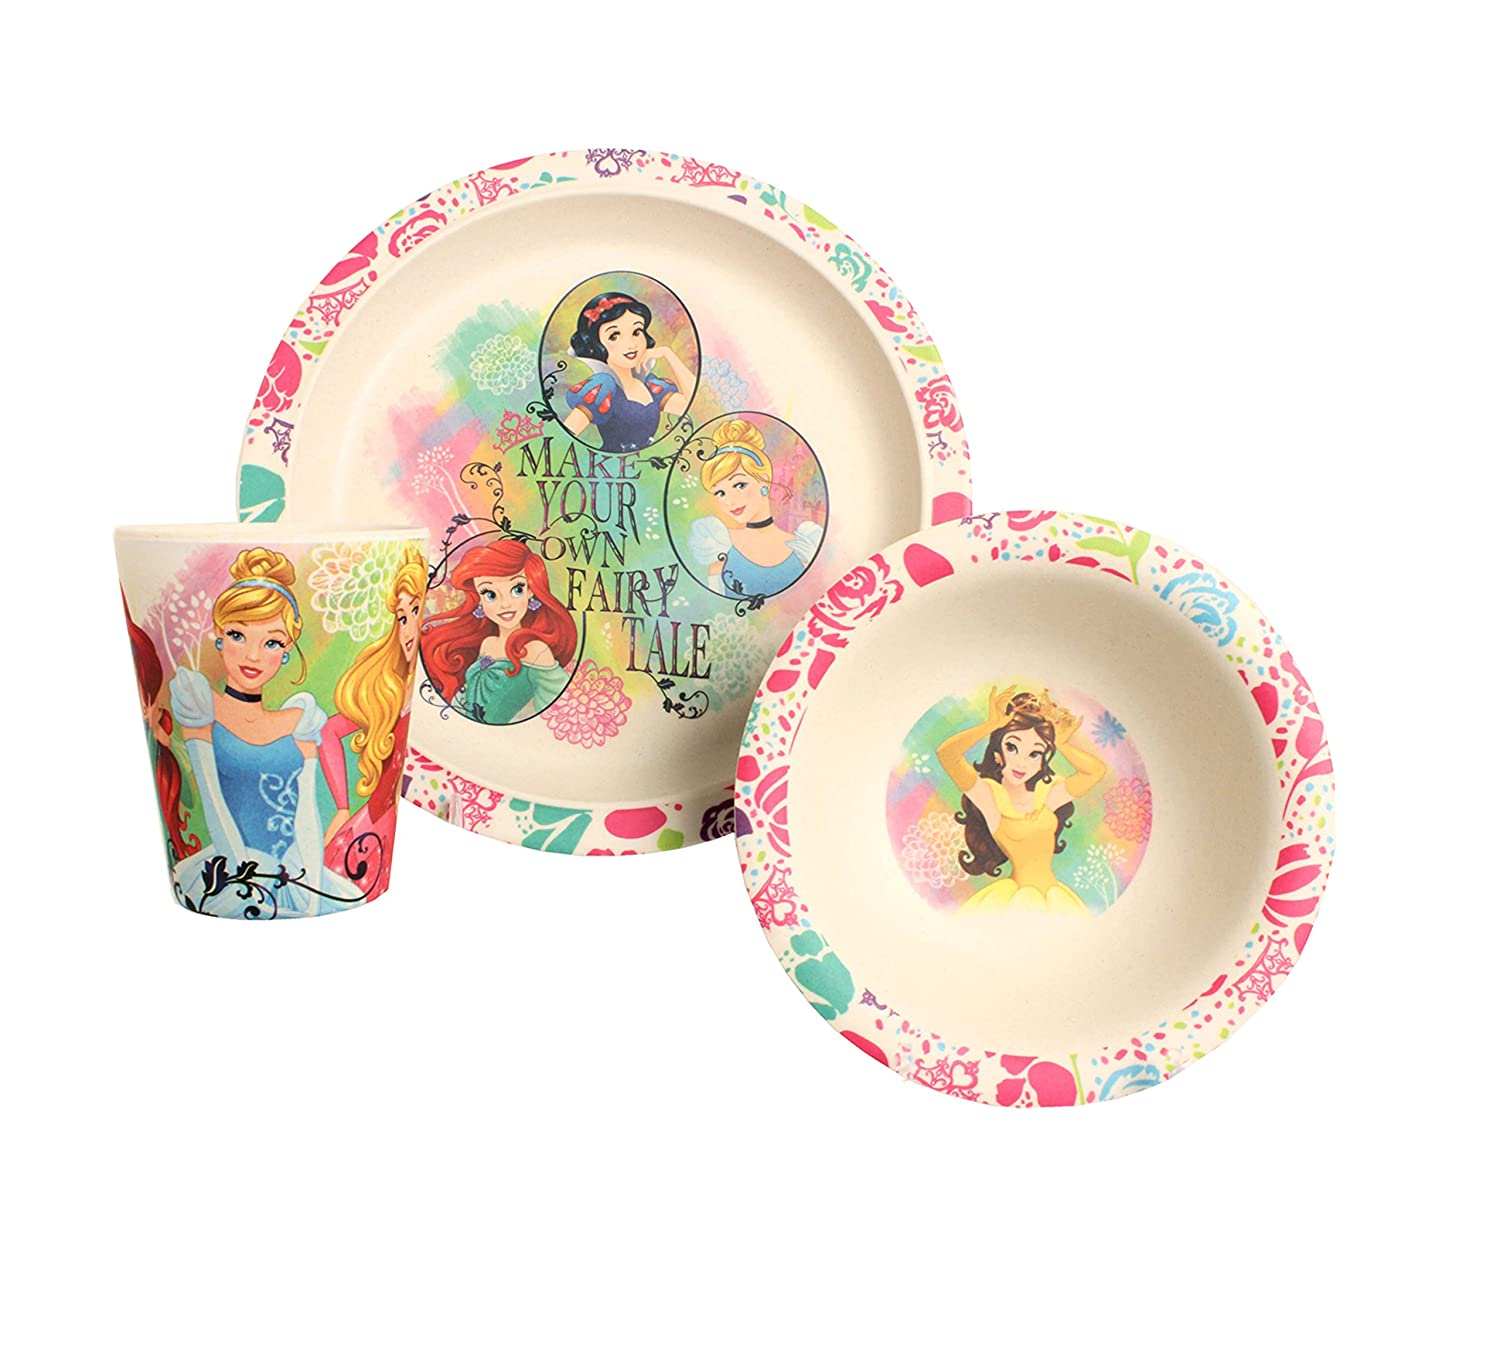 Amazon.com Disney Princess Dreams Come True Bamboo Dinnerware Set Multicolor 3-Piece Kitchen \u0026 Dining  sc 1 st  Amazon.com & Amazon.com: Disney Princess Dreams Come True Bamboo Dinnerware Set ...